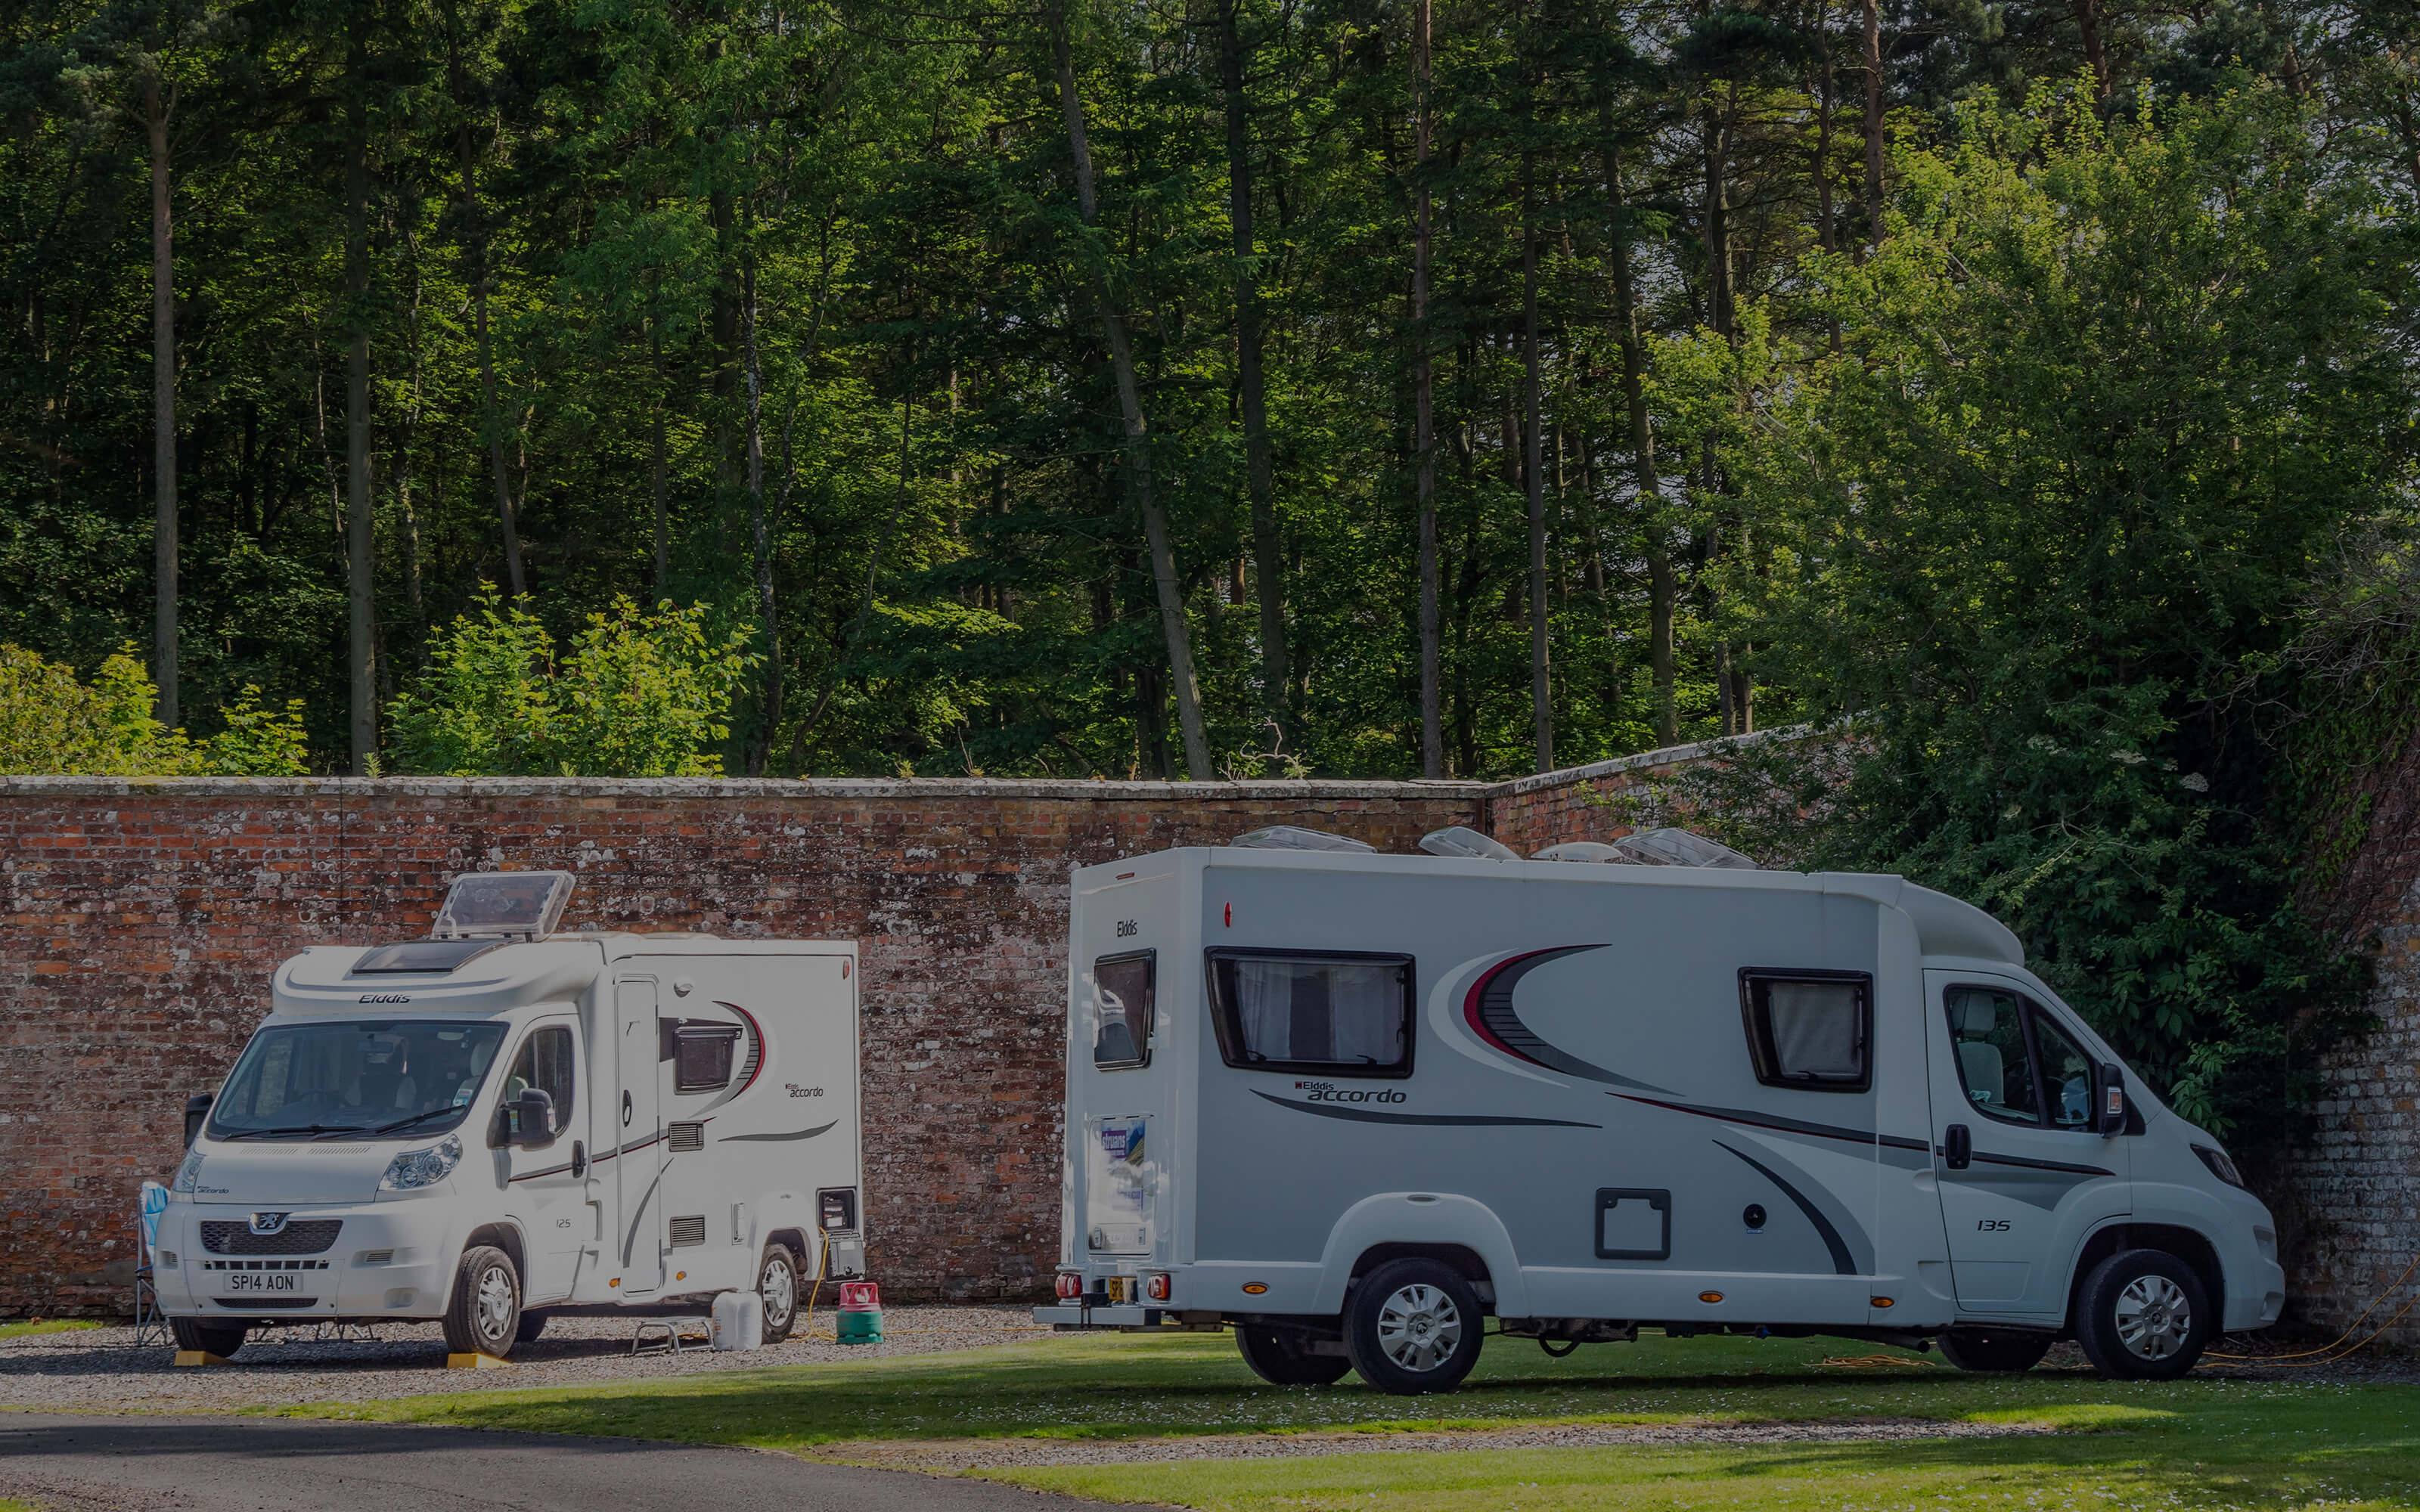 Two large motorhomes parked inside the walled garden.